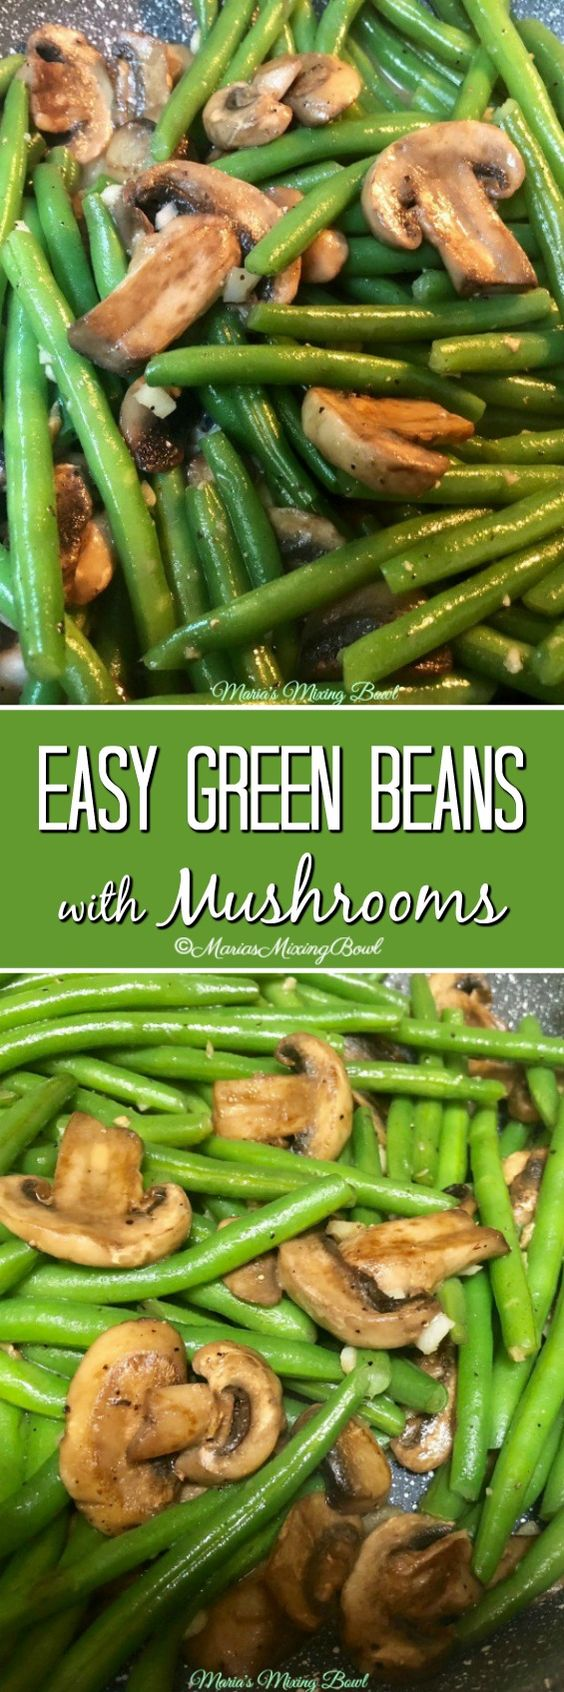 Easy Green Beans with Mushrooms Recipe will take you about 15 minutes from start to finish. Such a simple and delicious recipe the whole family drools over this one!